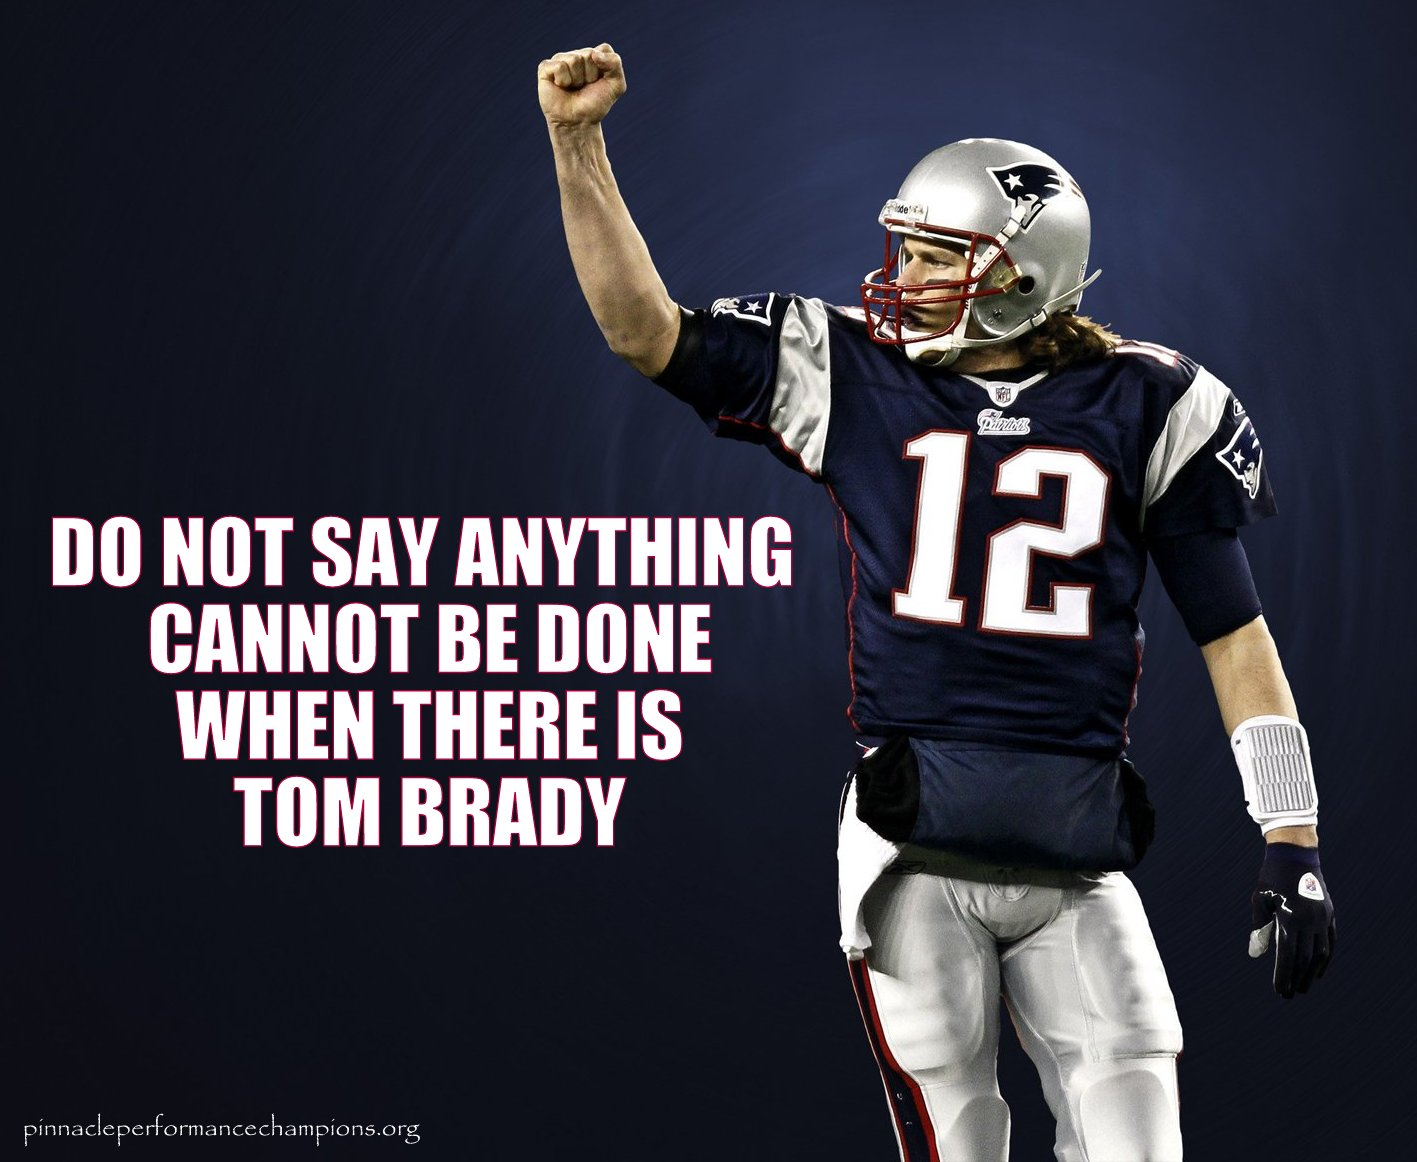 Tom Brady Inspirational Quotes: Pinnacle Performance Champions